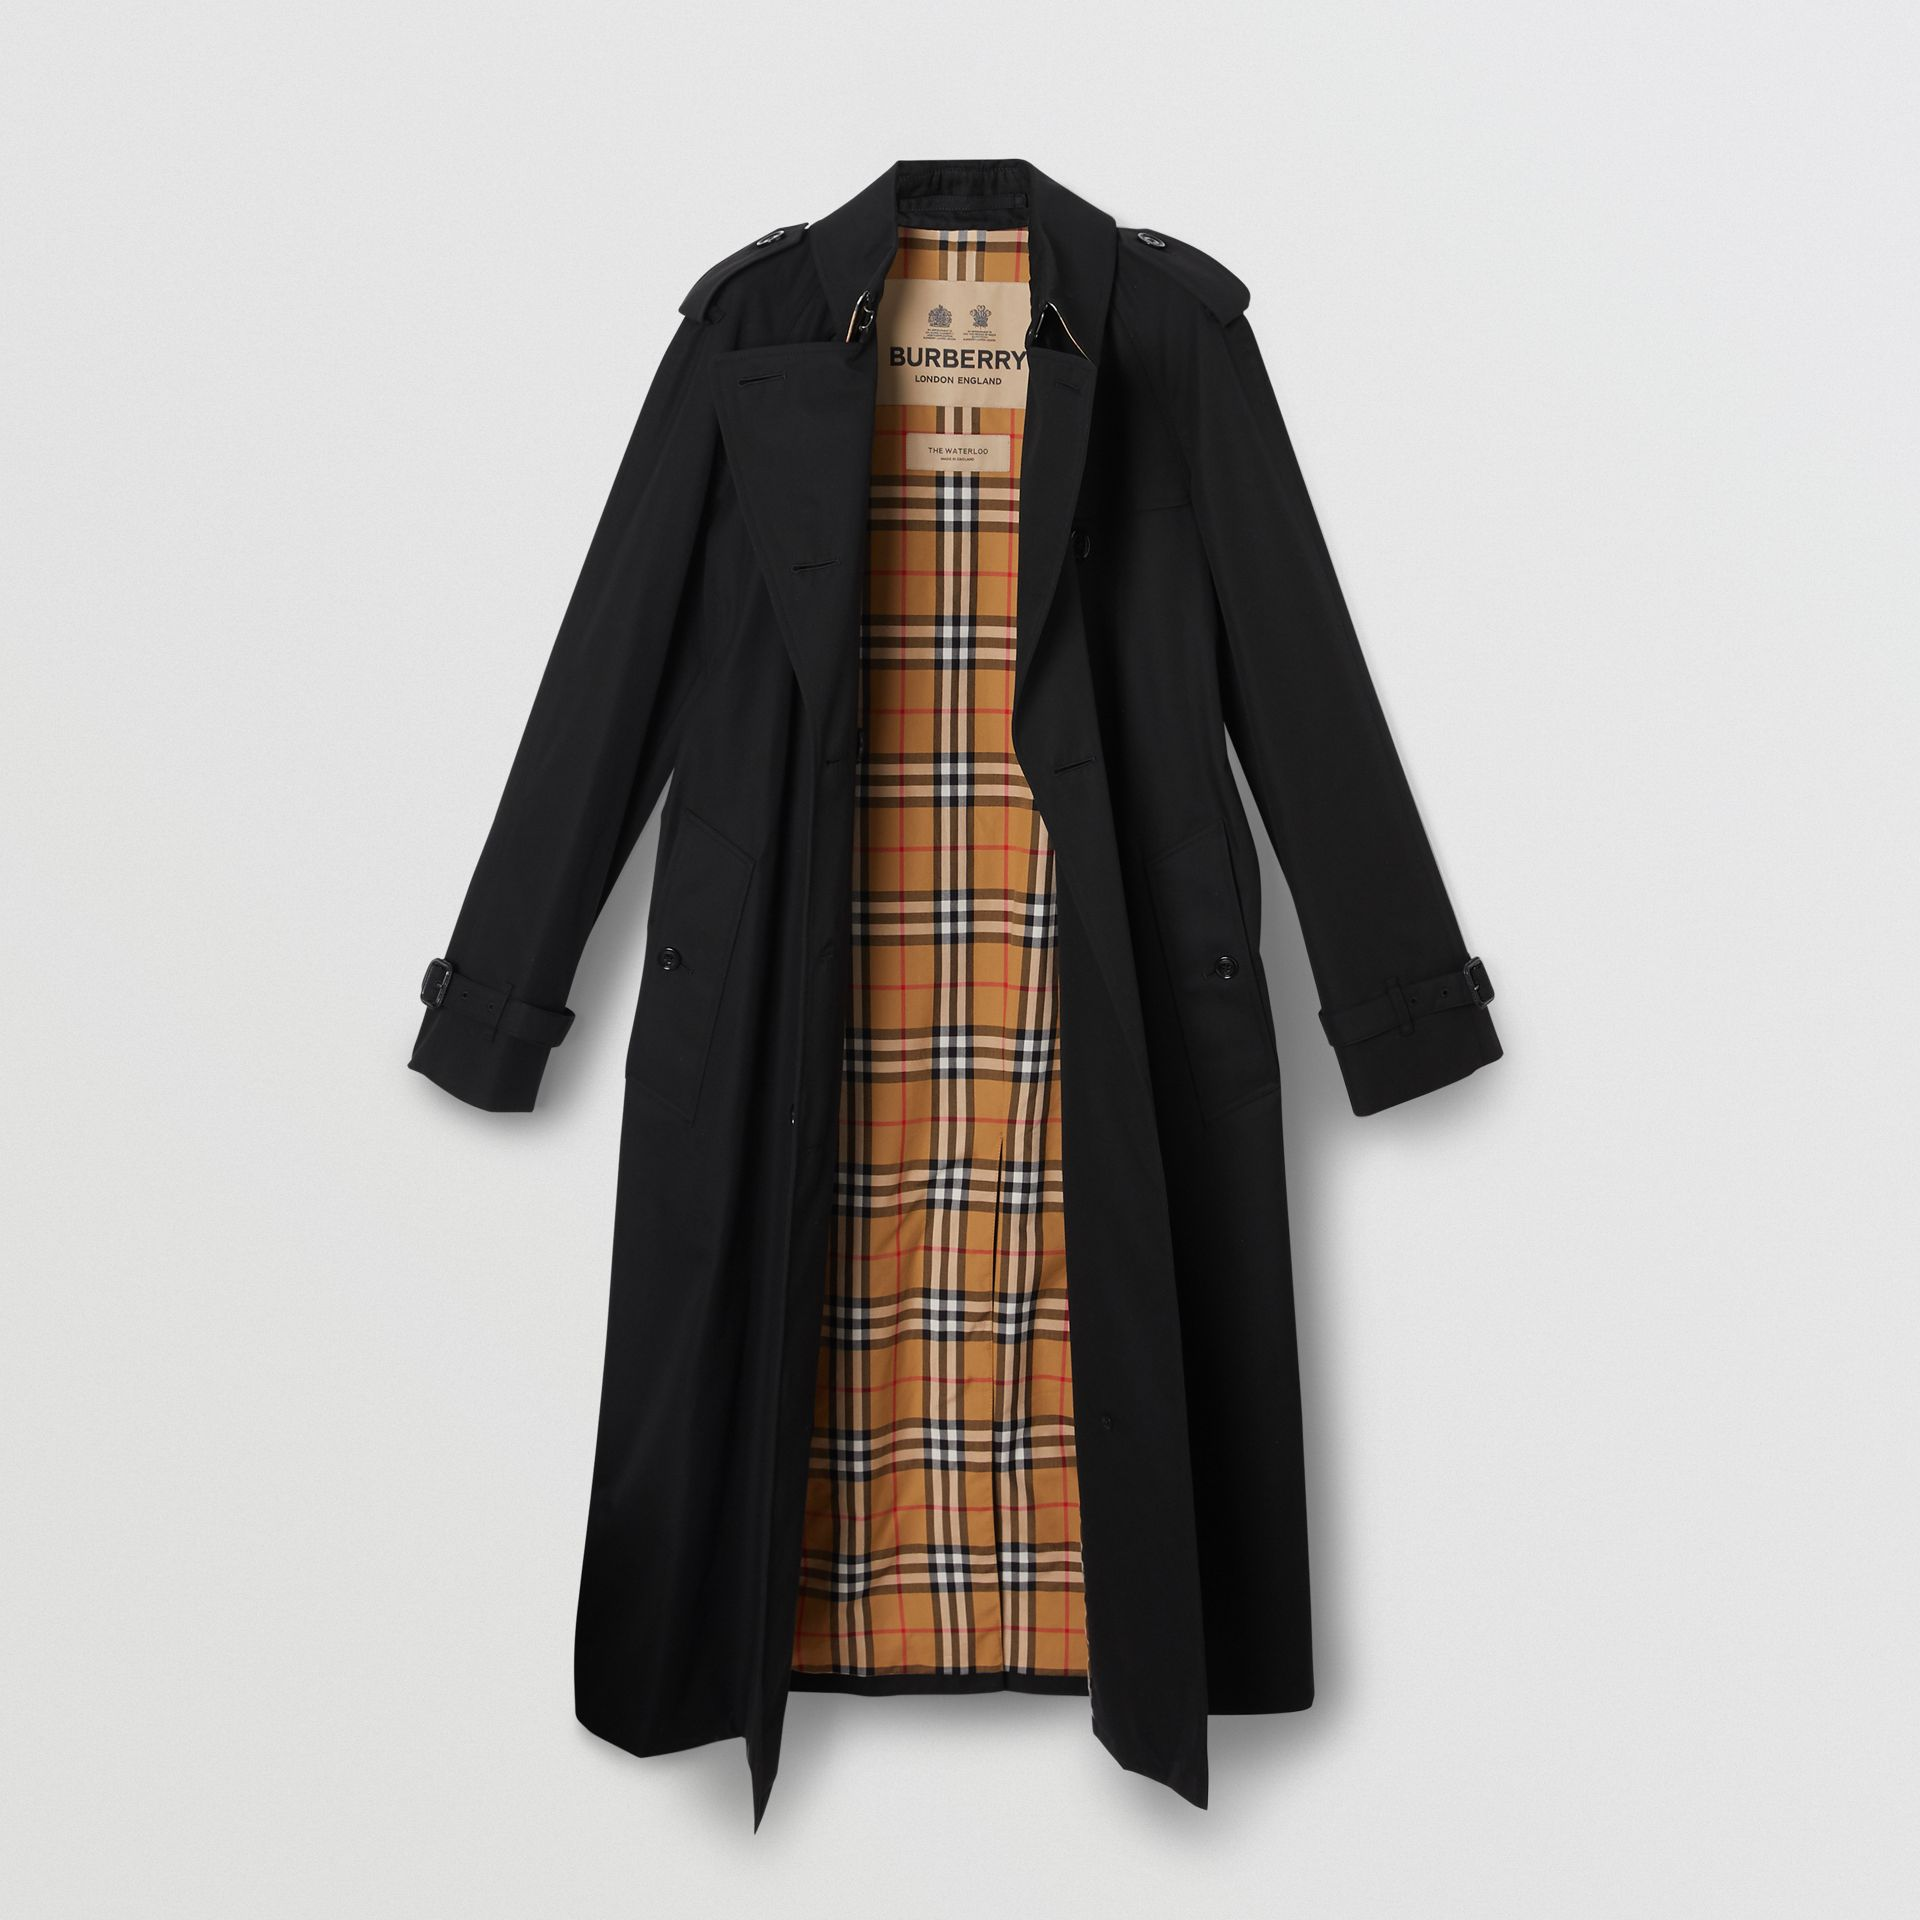 Langer Heritage-Trenchcoat in Waterloo-Passform (Schwarz) - Damen | Burberry - Galerie-Bild 6